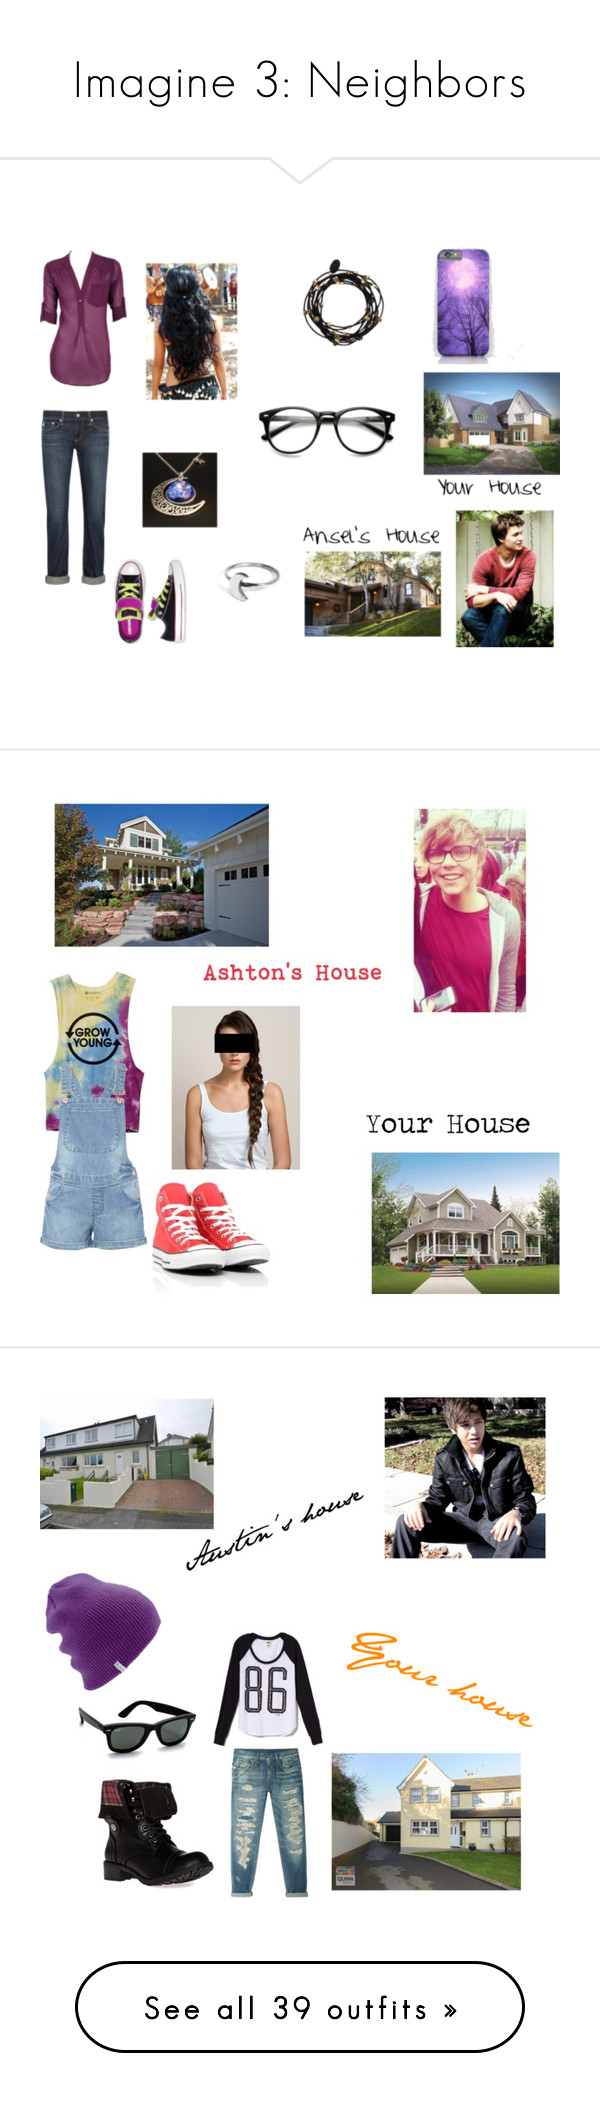 """Imagine 3: Neighbors"" by smmashley ❤ liked on Polyvore featuring AG Adriano Goldschmied, Converse, Holly Ryan, Bee Charming, Home Source International, Hershesons, Victoria's Secret, R13, DailyLook and Ray-Ban"